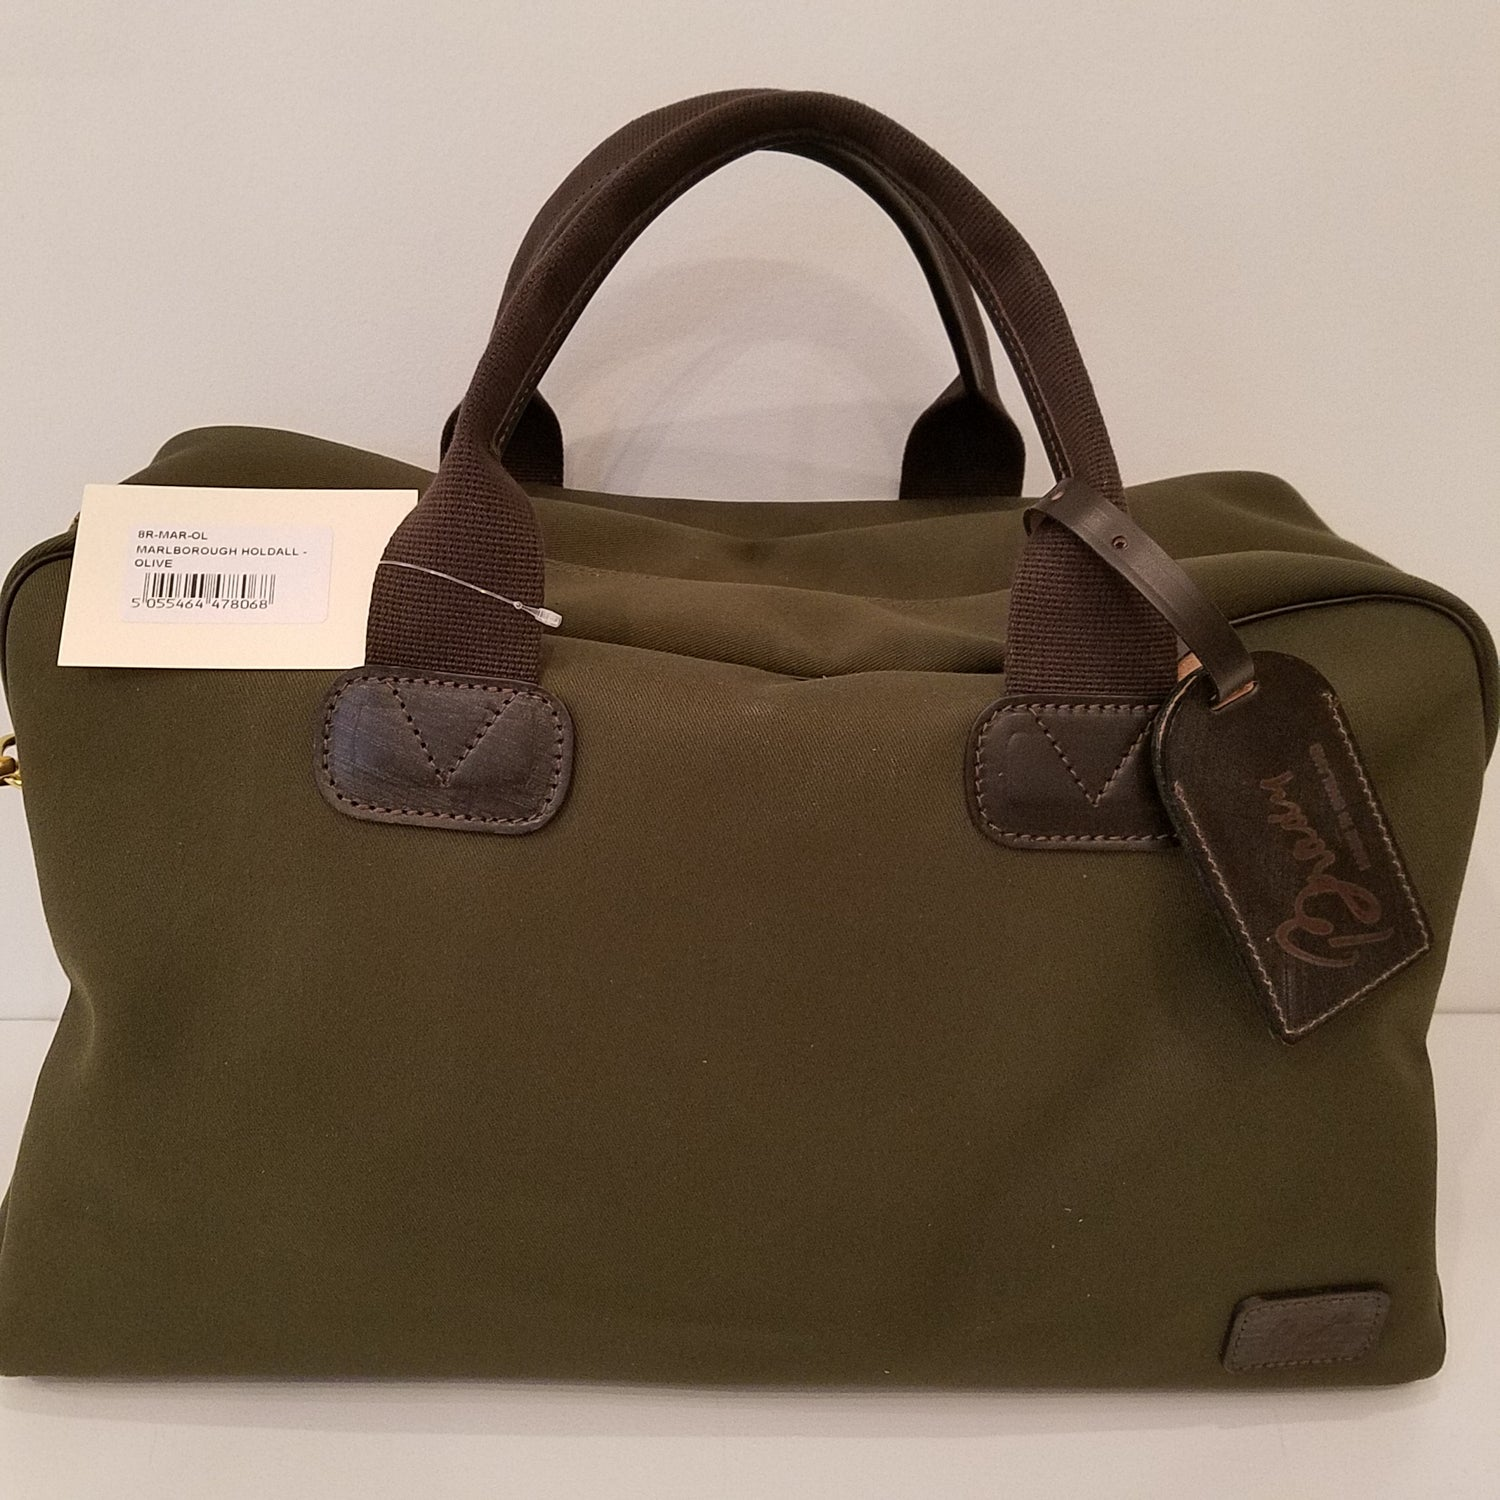 Brady Marlborough Holdall